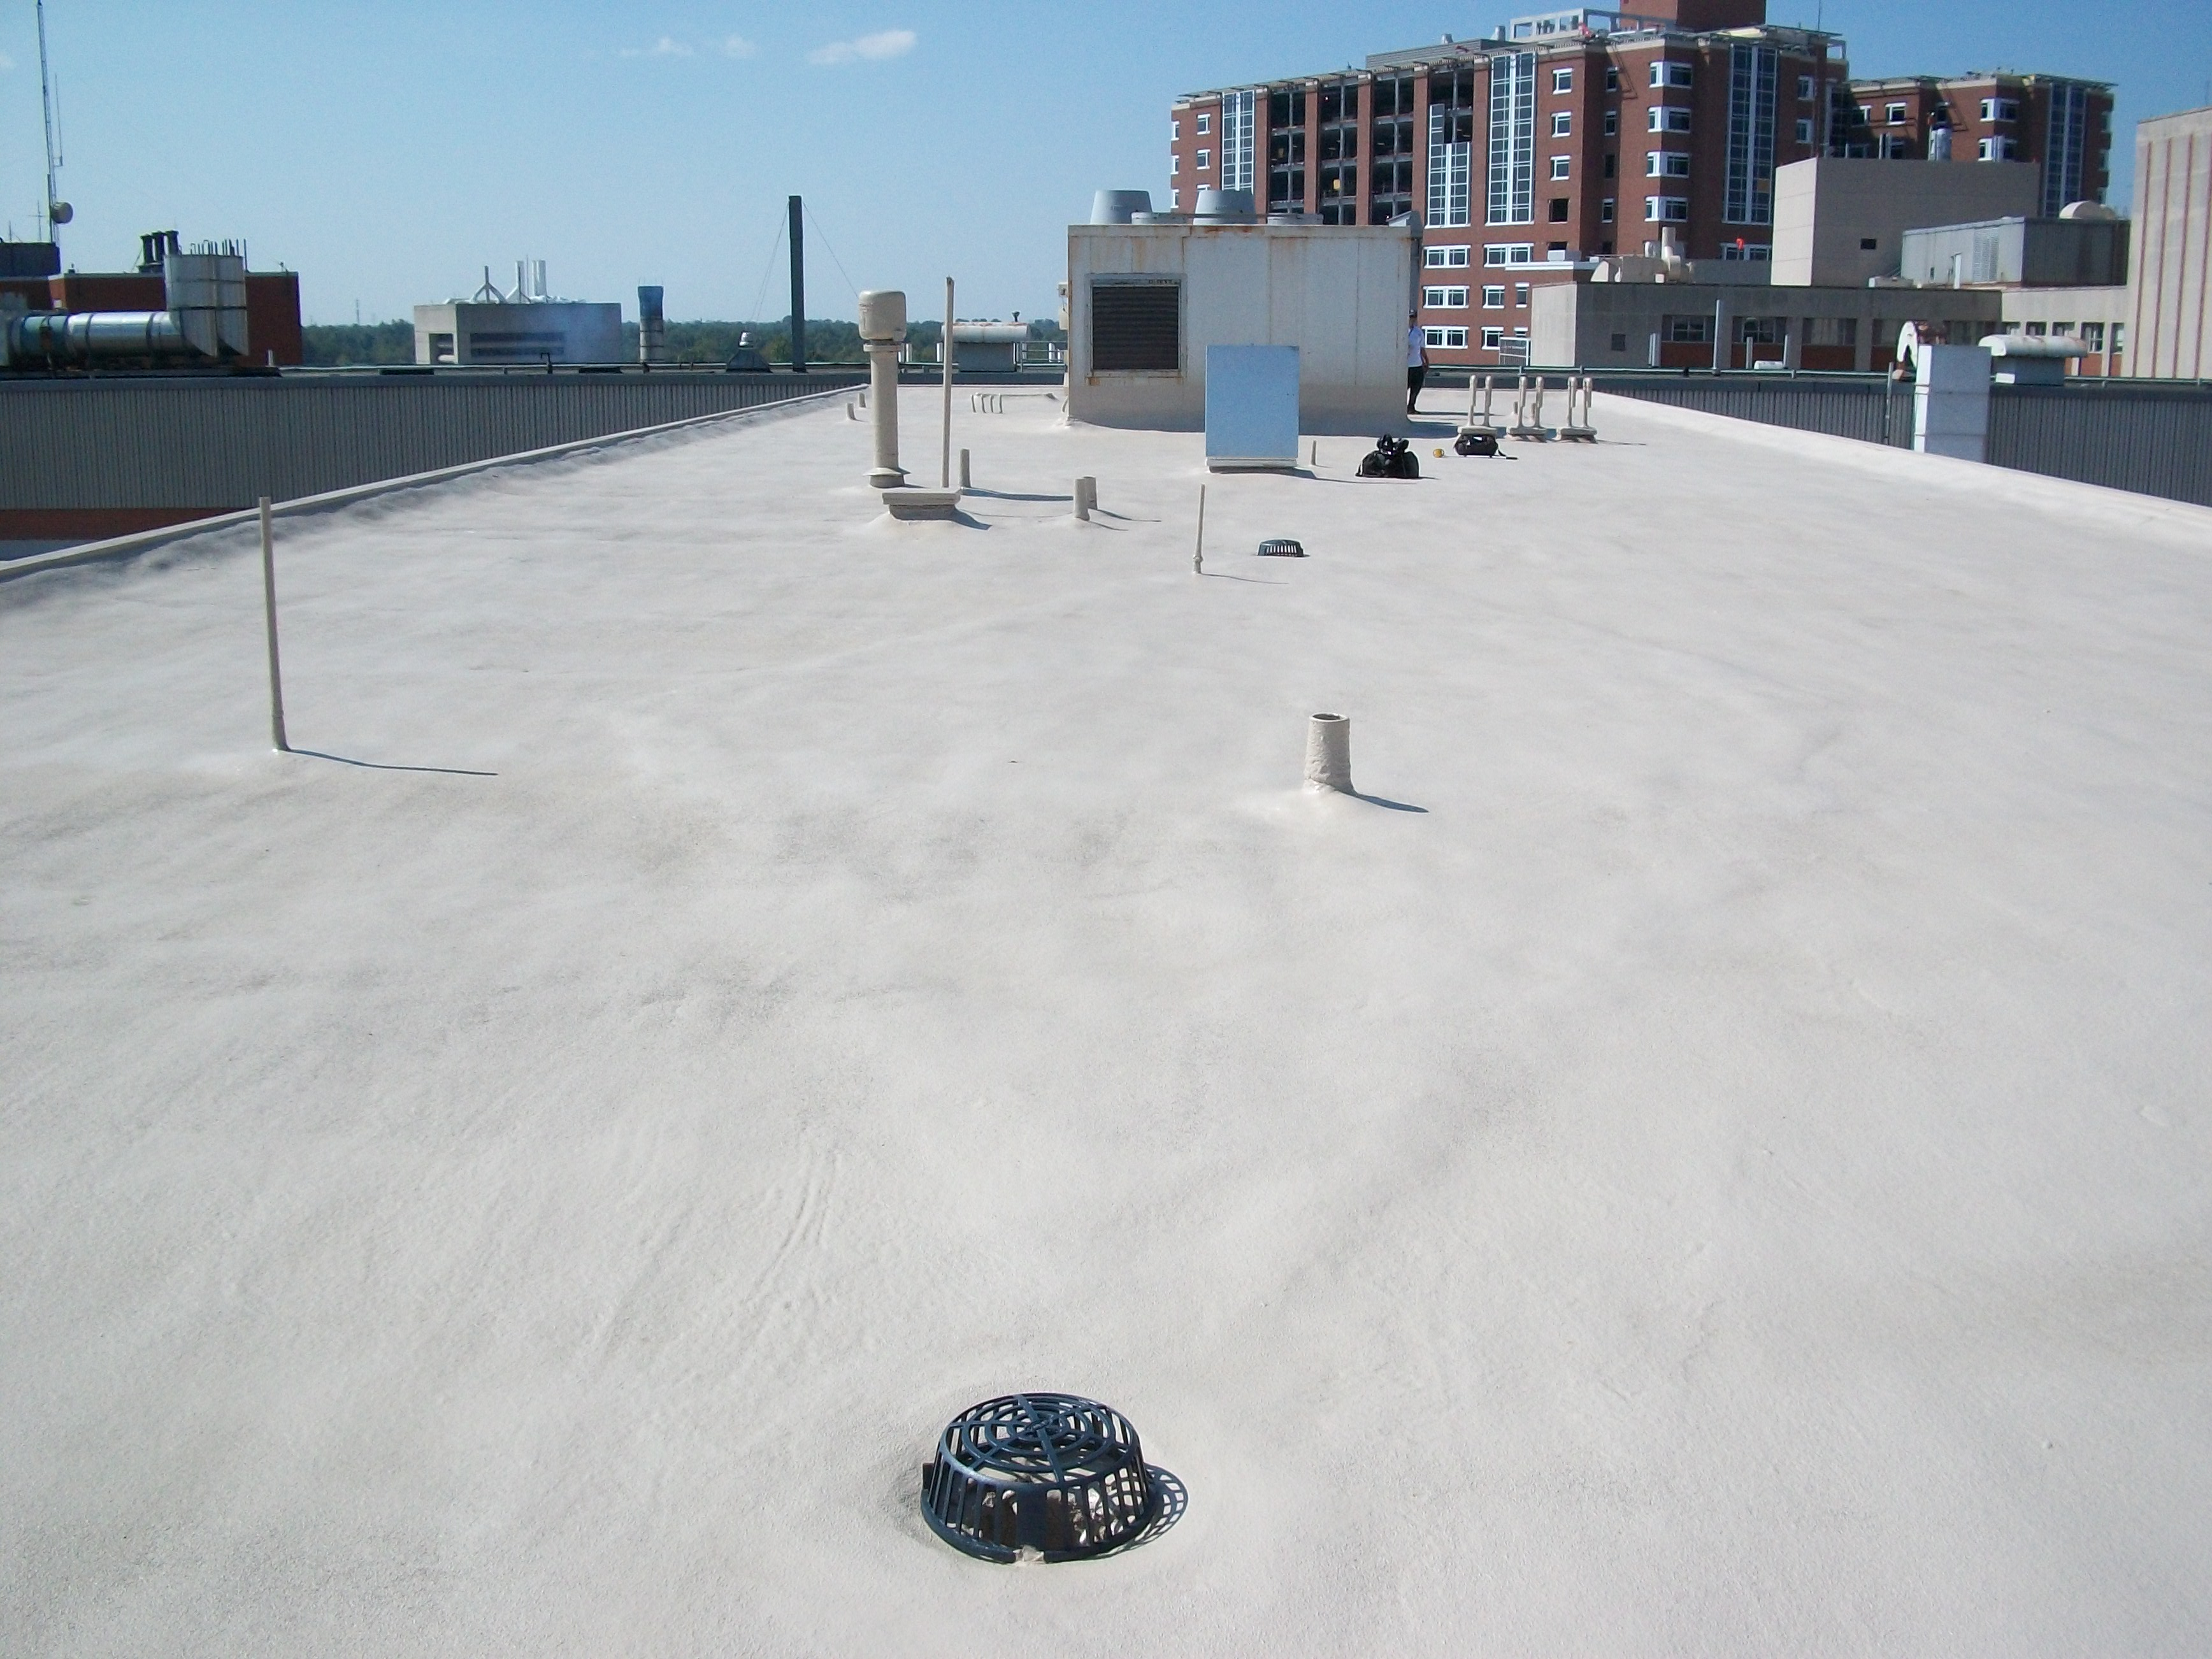 Using Drones for Thermal Inspections